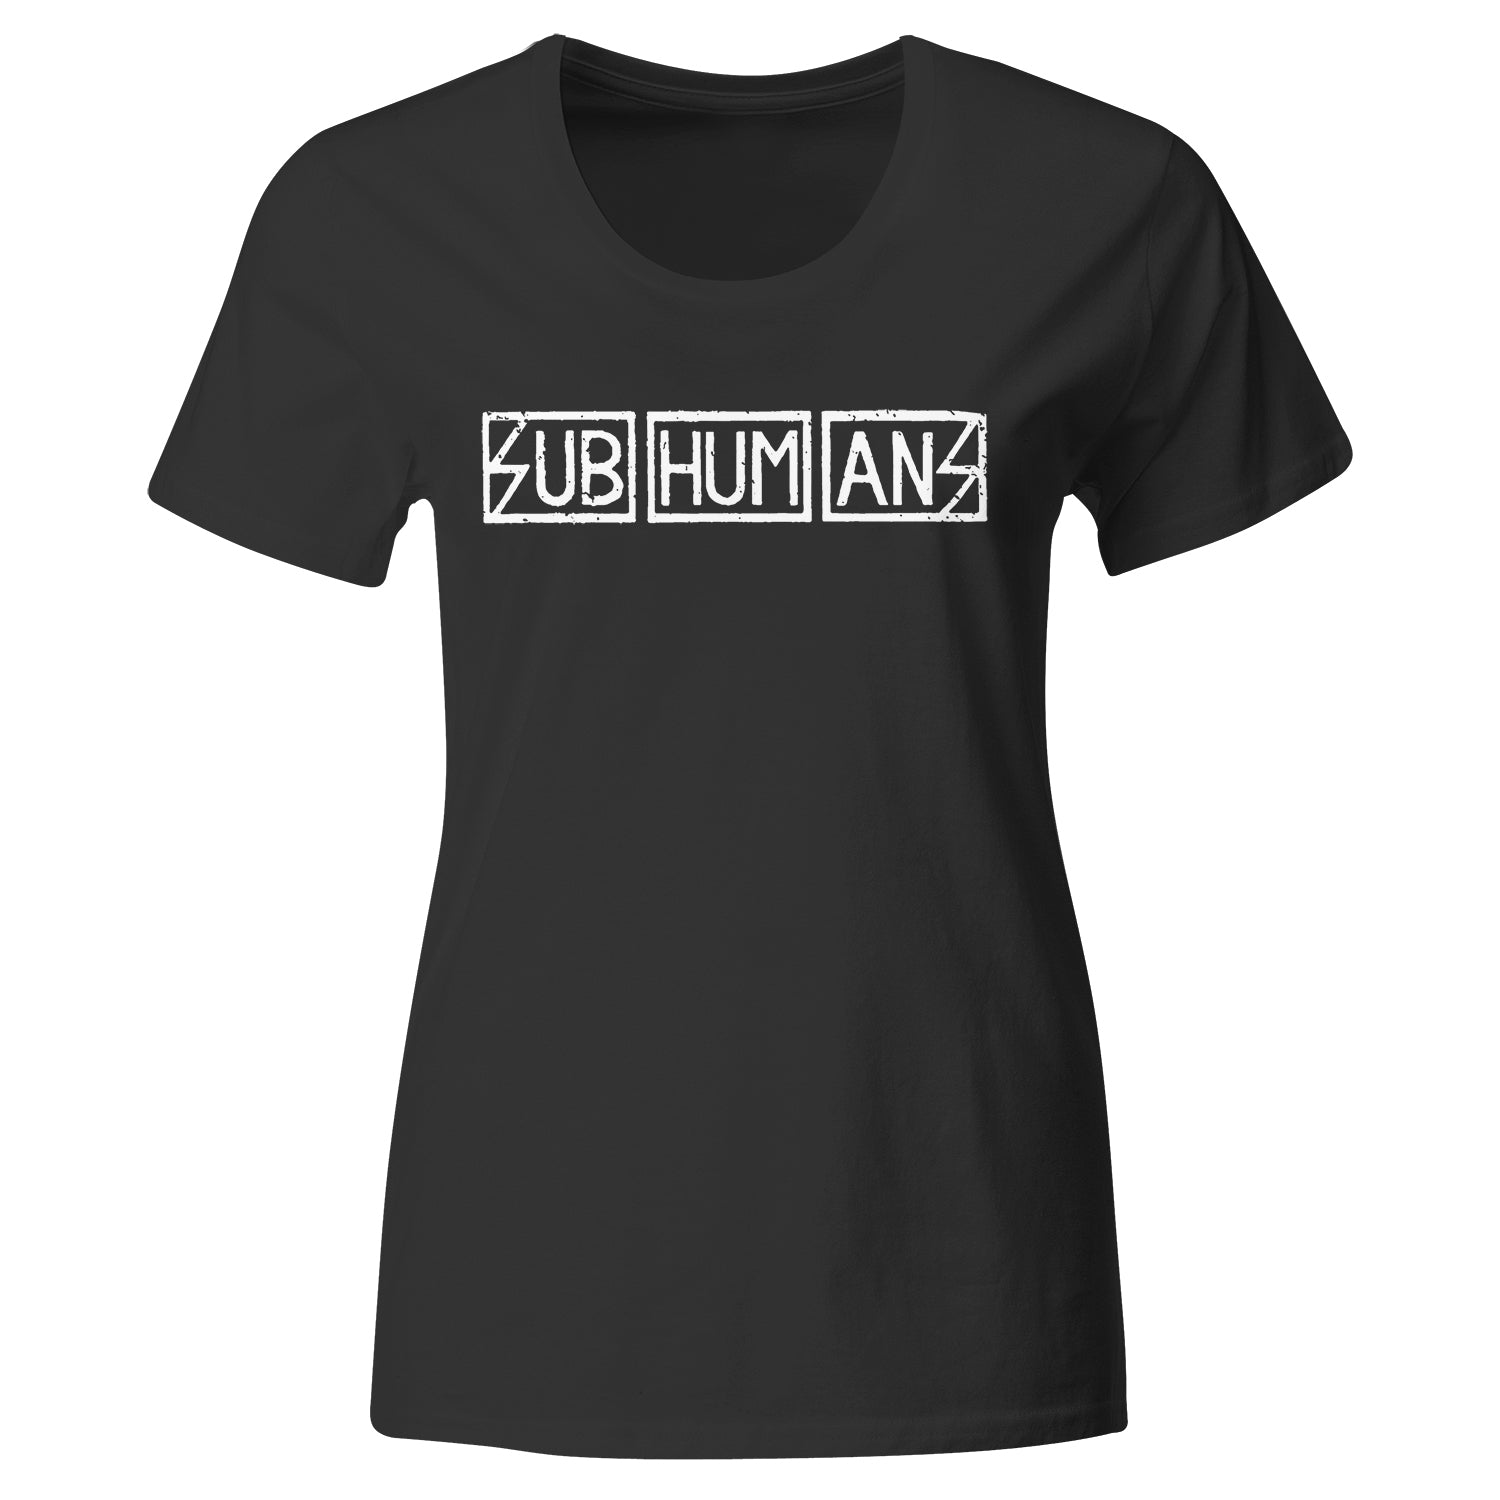 Subhumans - Horizontal Logo - Black - T-shirt - Fitted